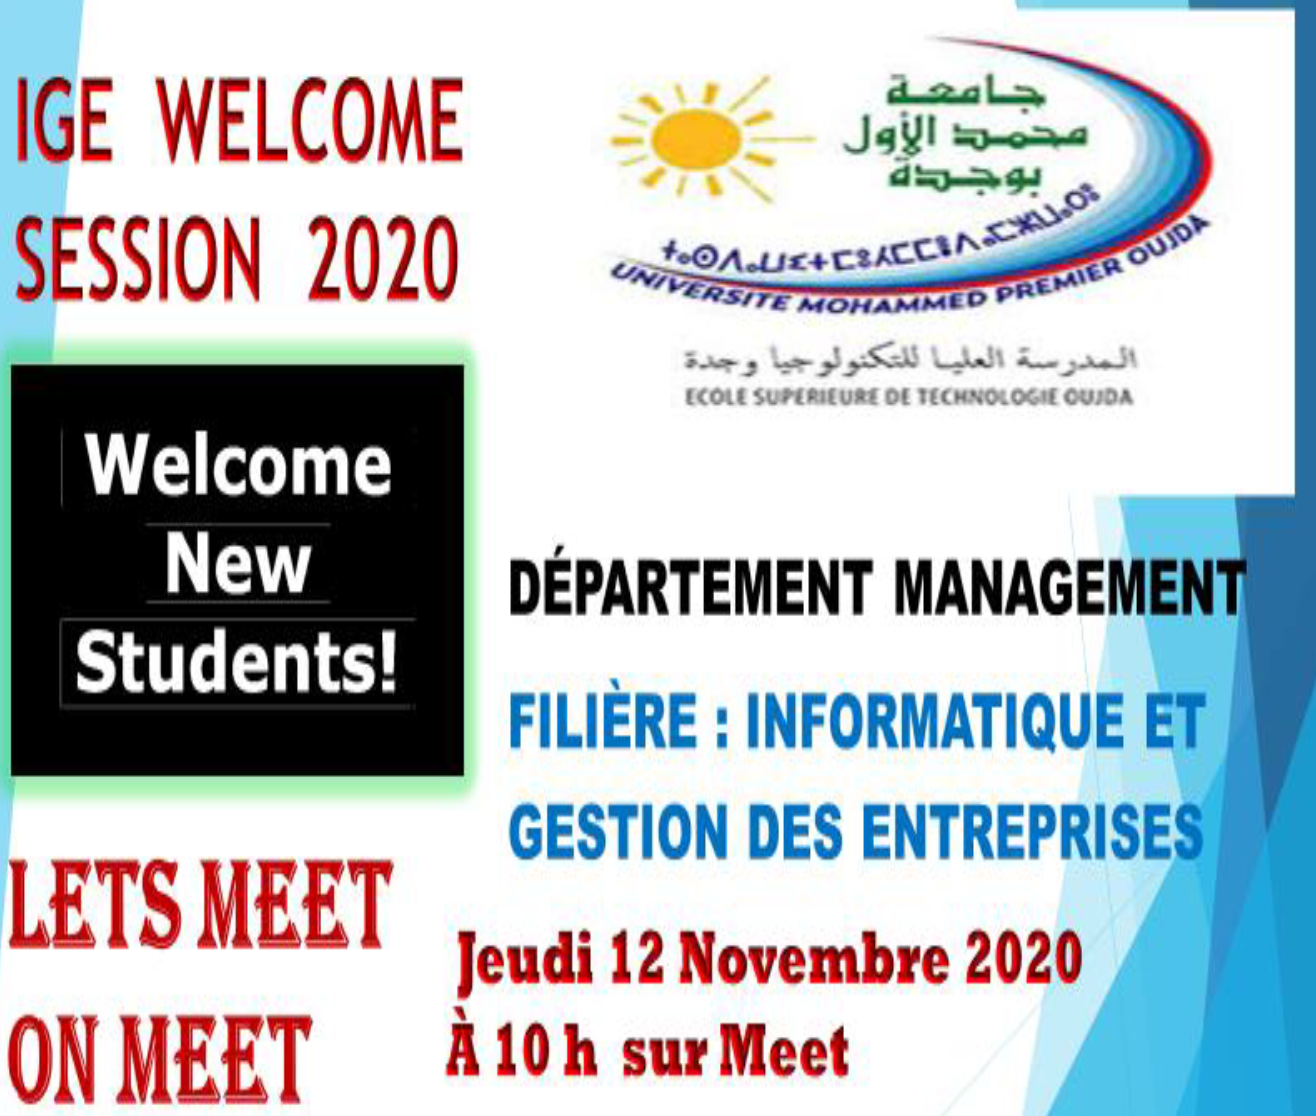 IGE WELCOM SESSION 2020